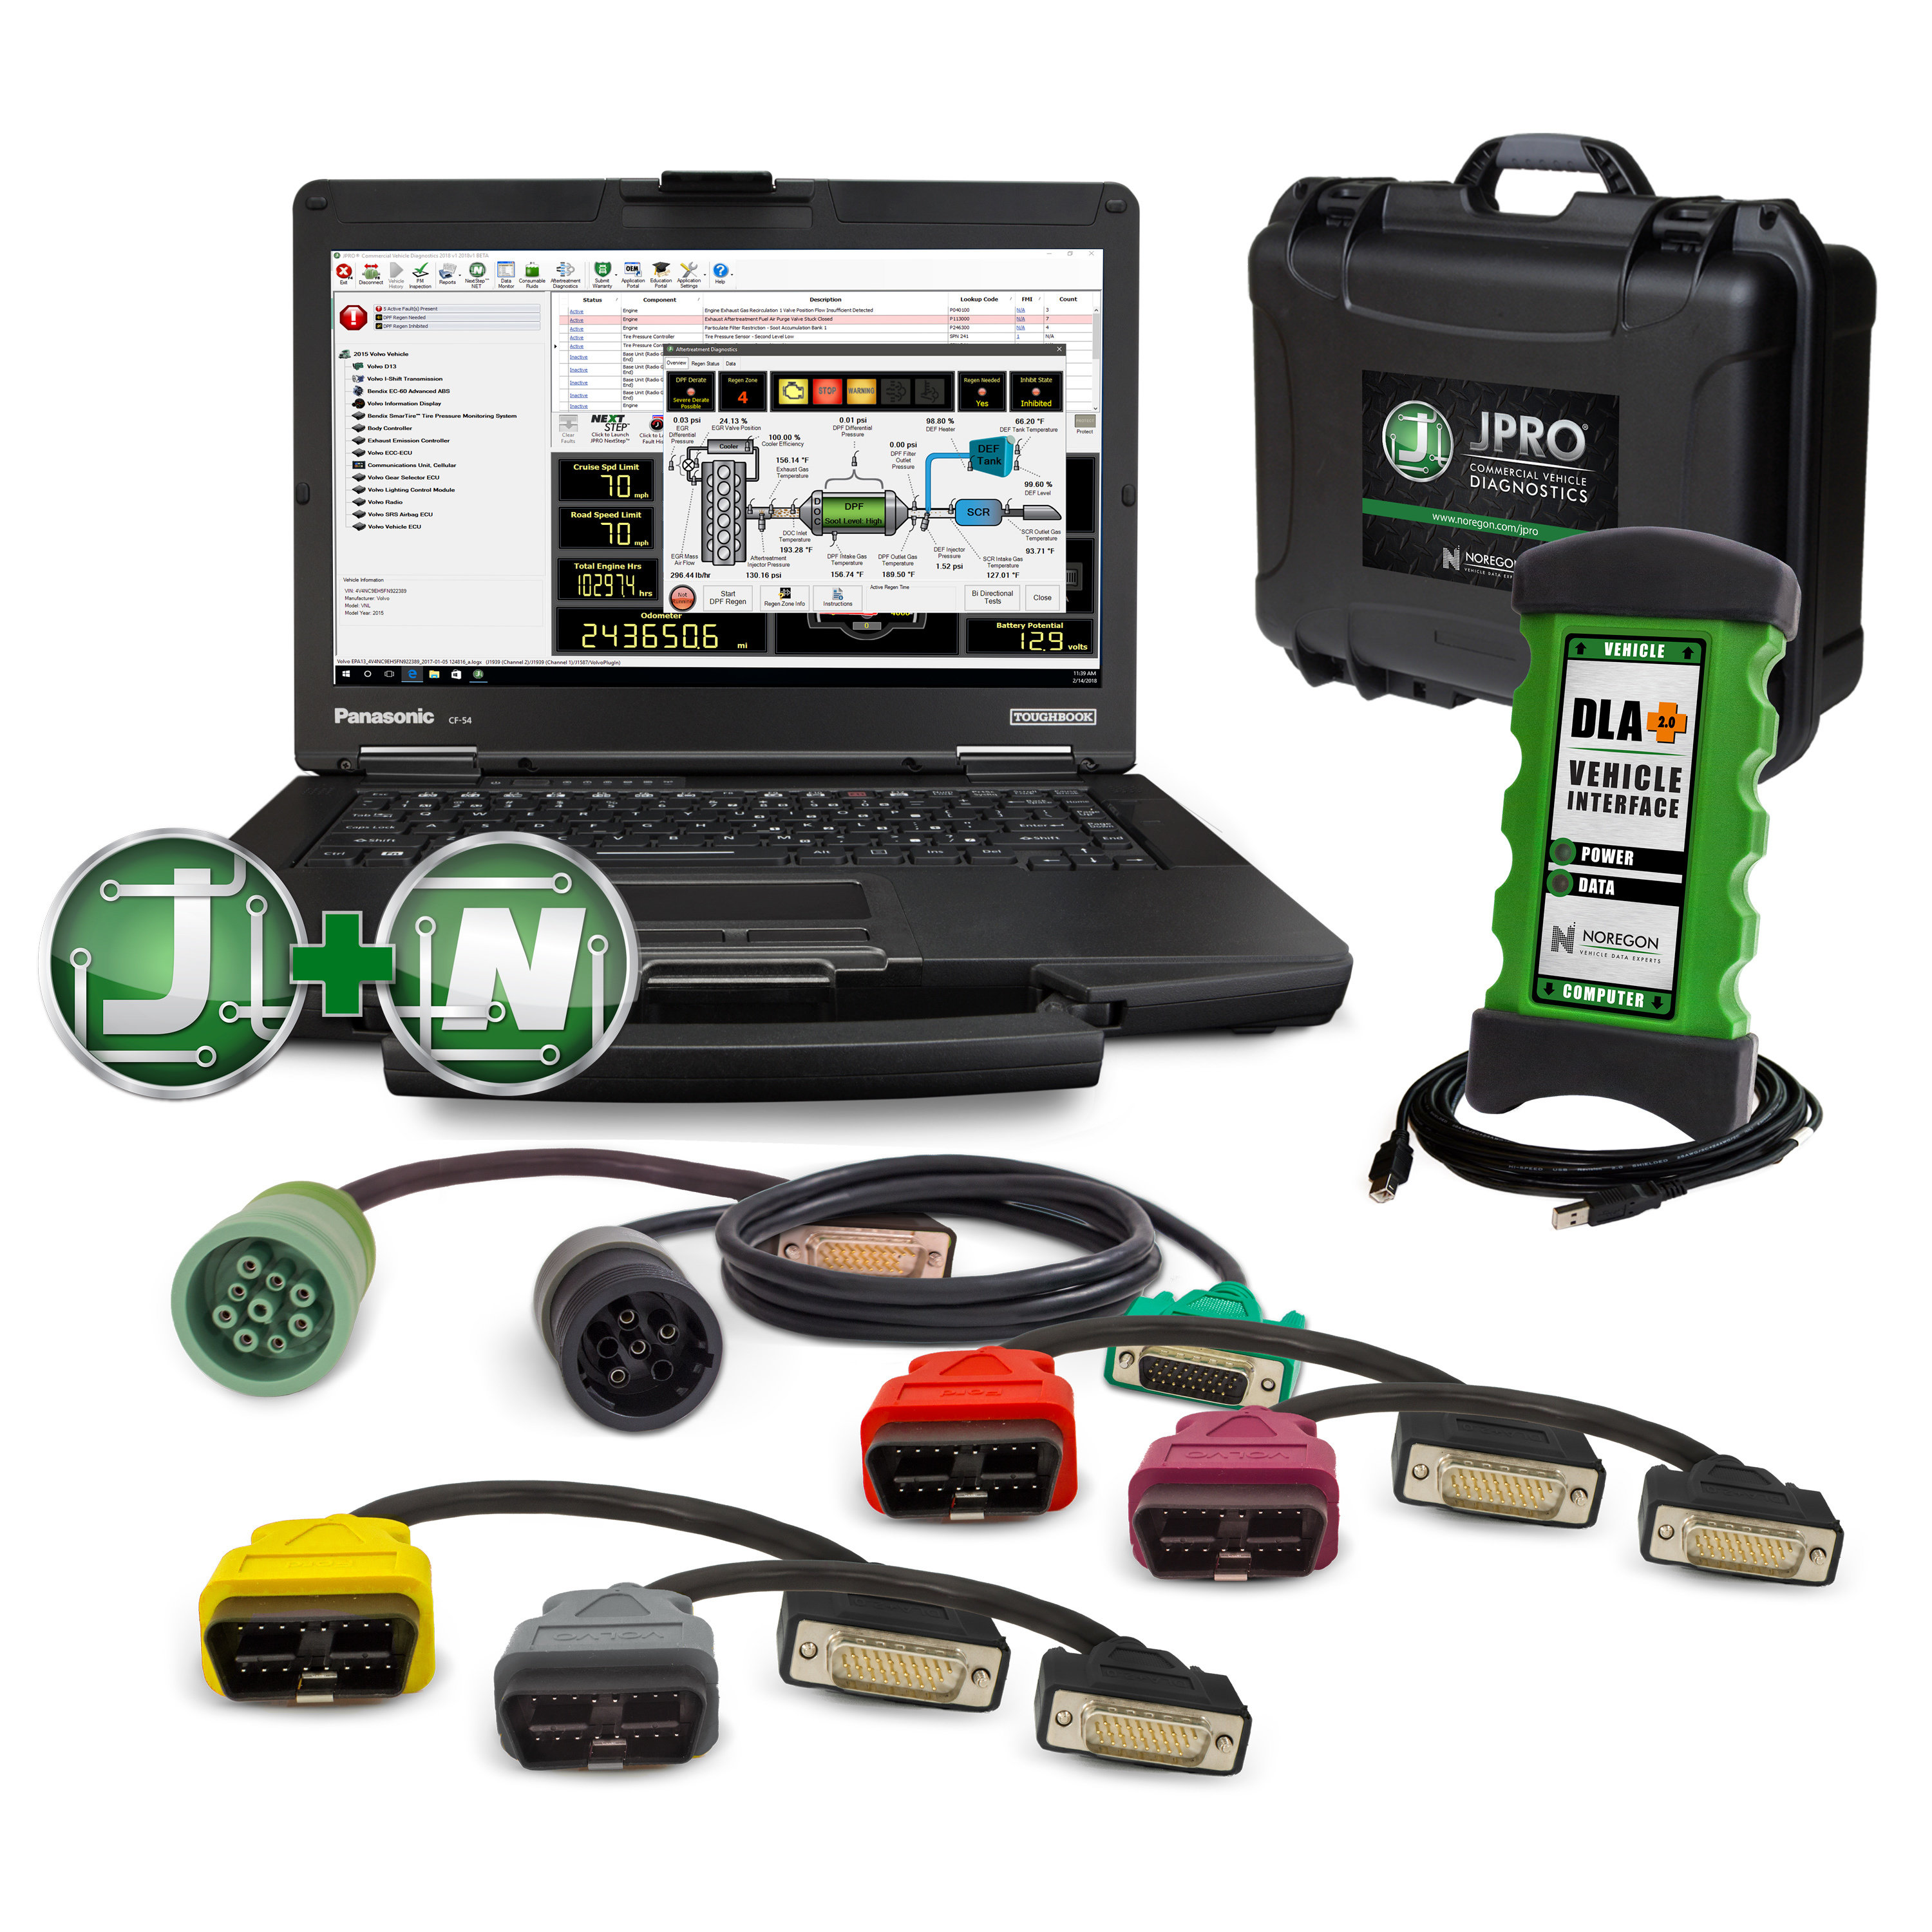 JPro Professional Diagnostic Toolbox with Next Step JPRO001